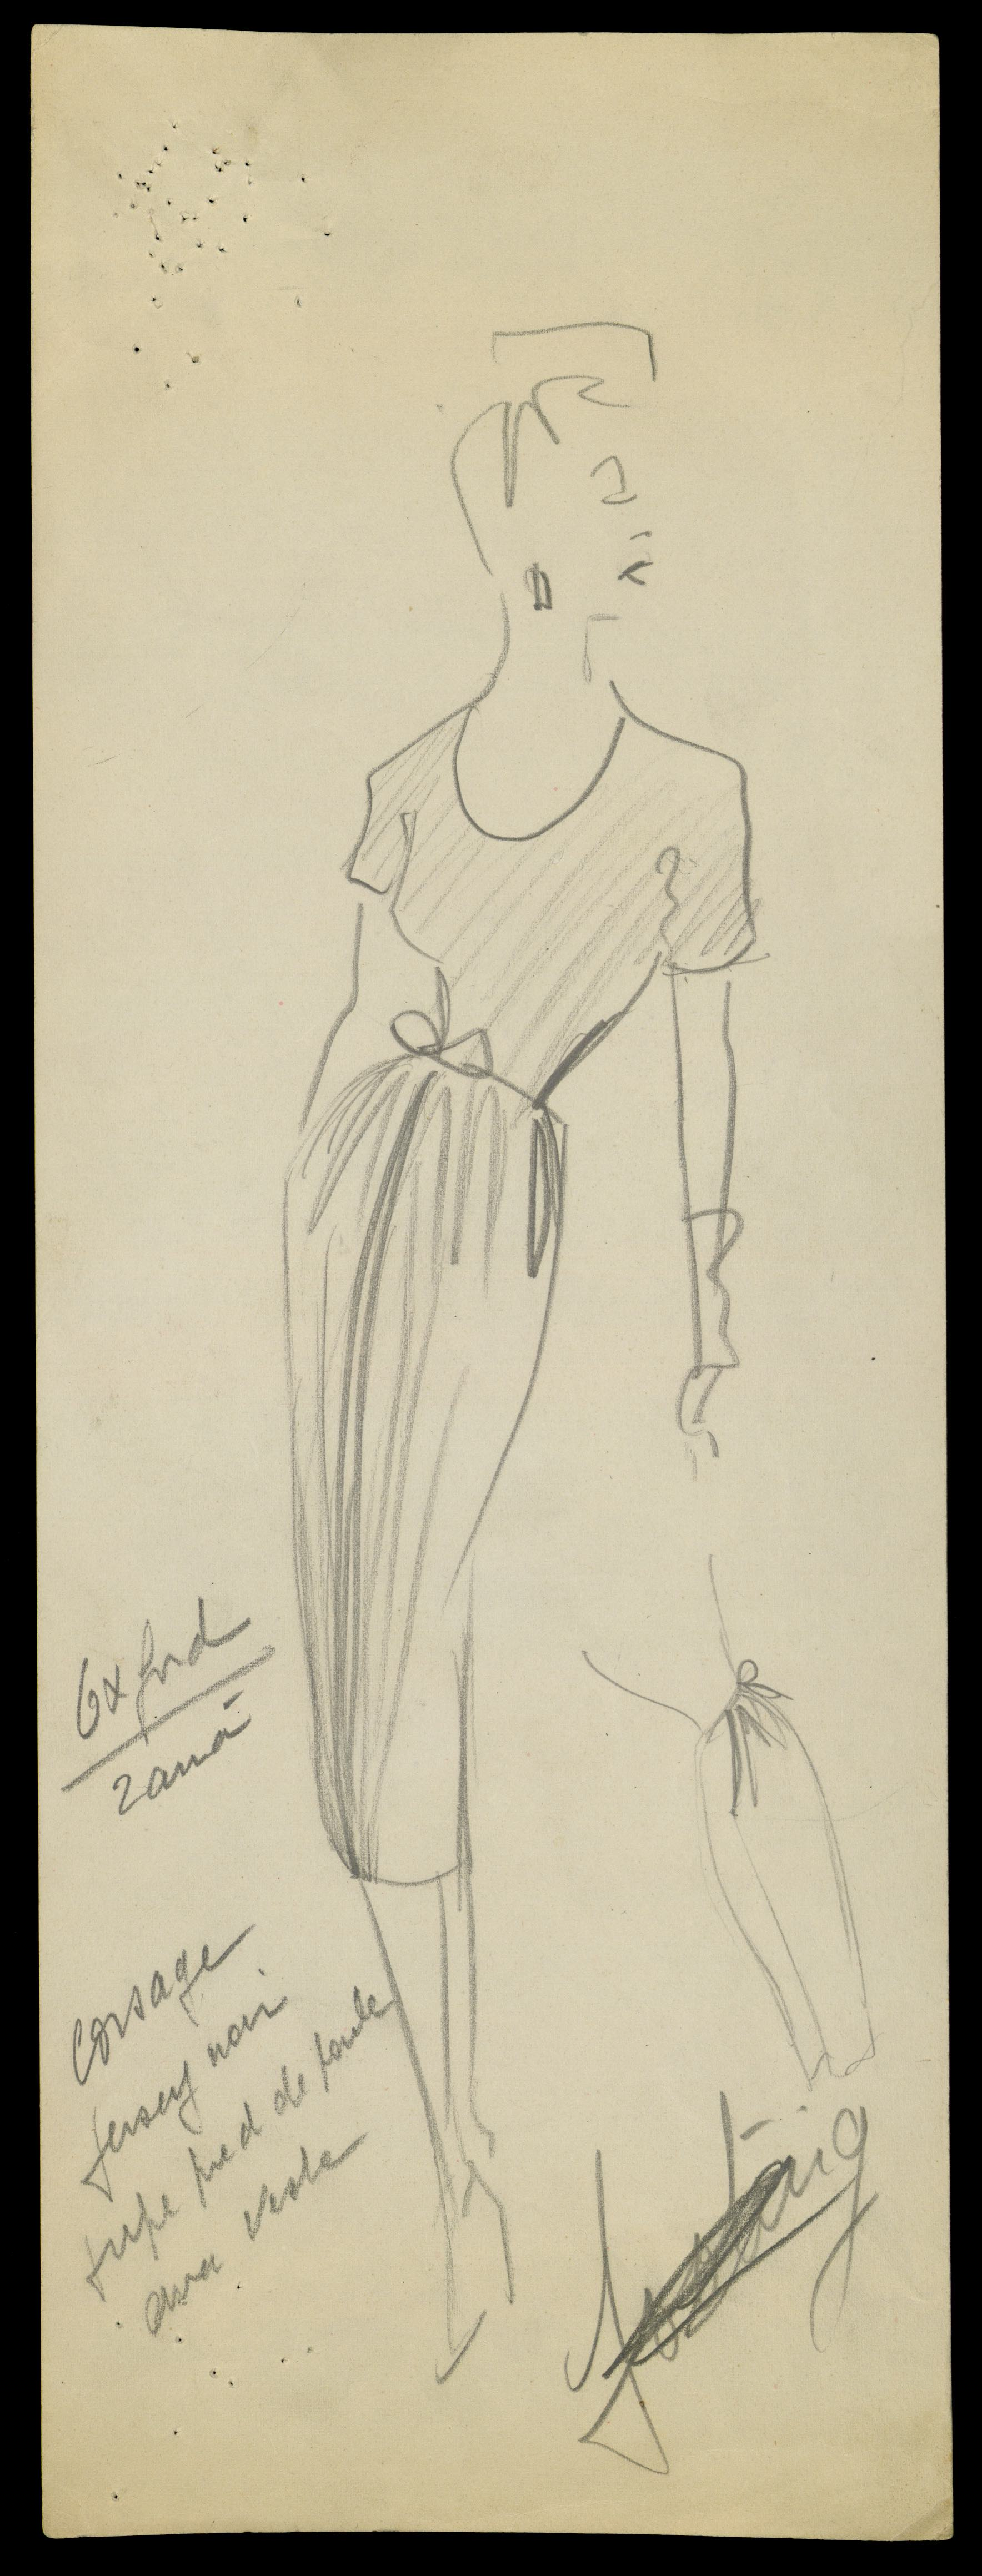 Sketch by Christian Dior for model Oxford, Spring-Summer 1947 Haute Couture collection © Christian Dior.jpg